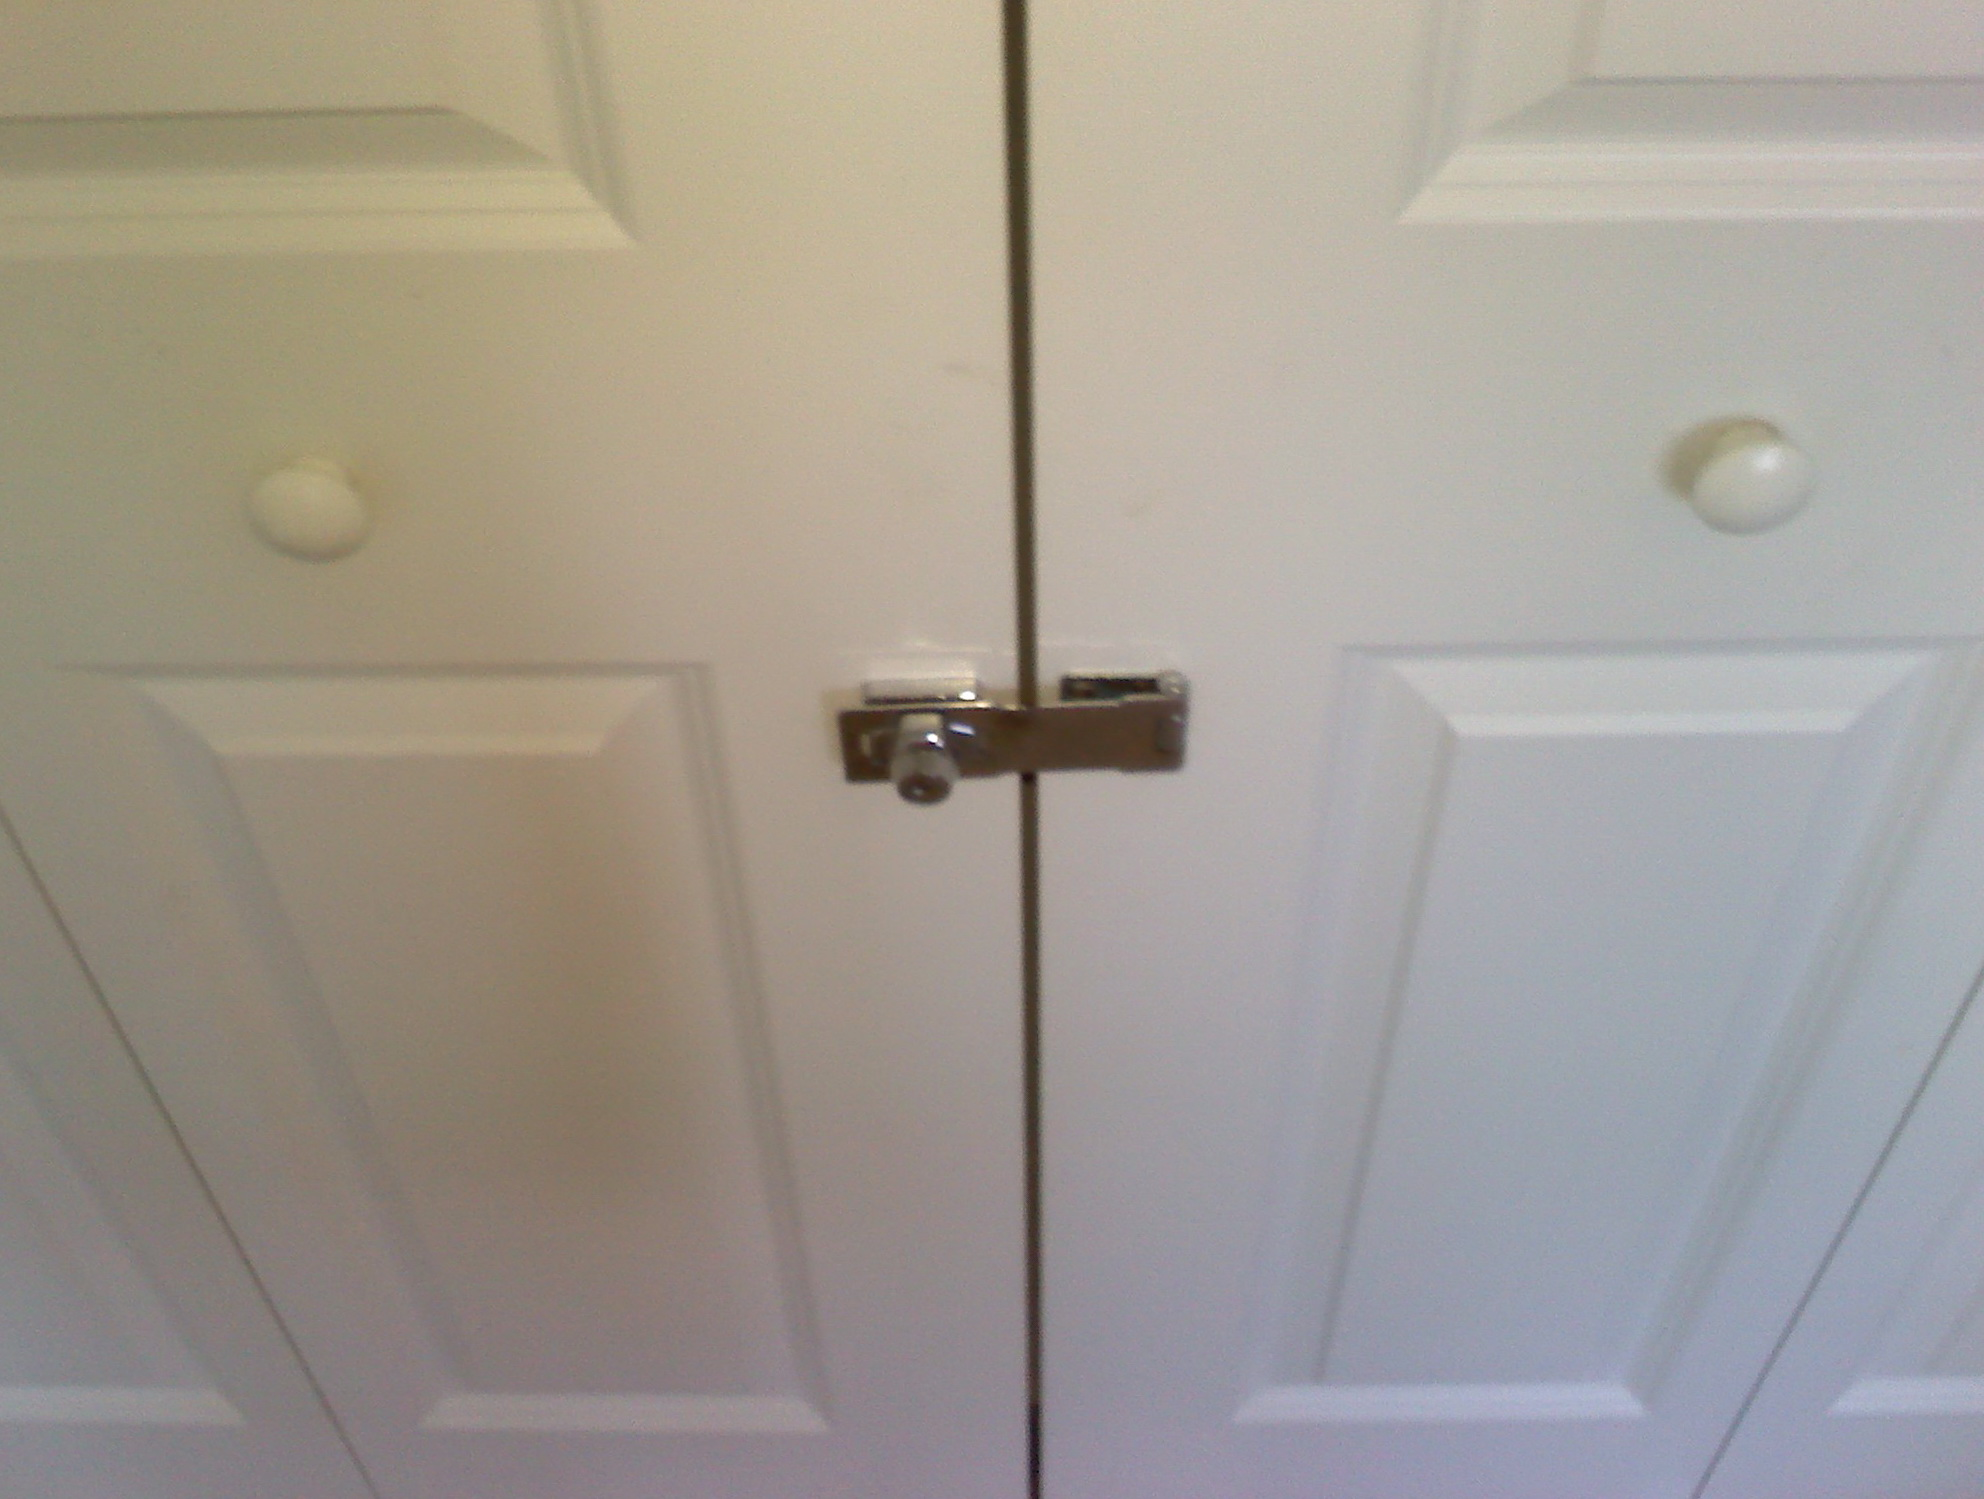 Bedroom Door Emergency Key Mirrored Sliding Closet Door Lock 22 Secrets You